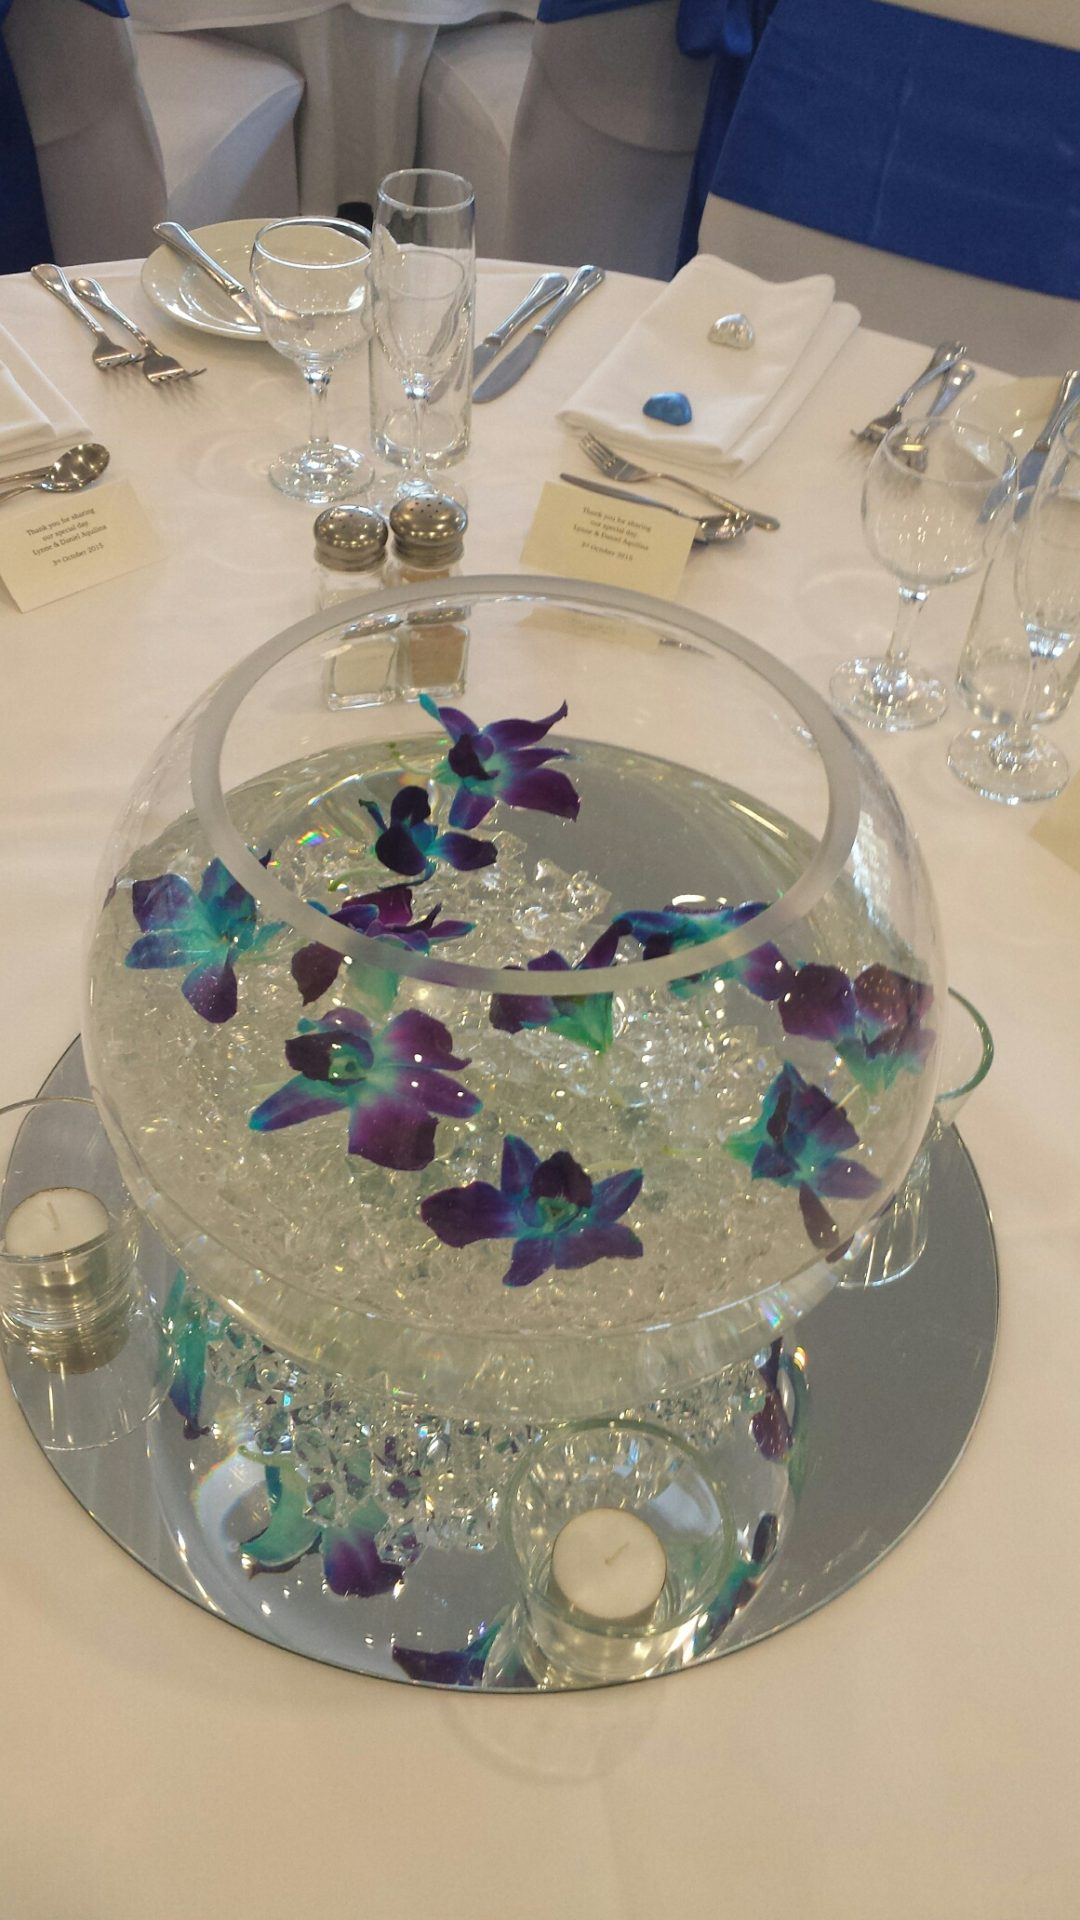 Large glass fish bowl with floating Singapore orchid blooms